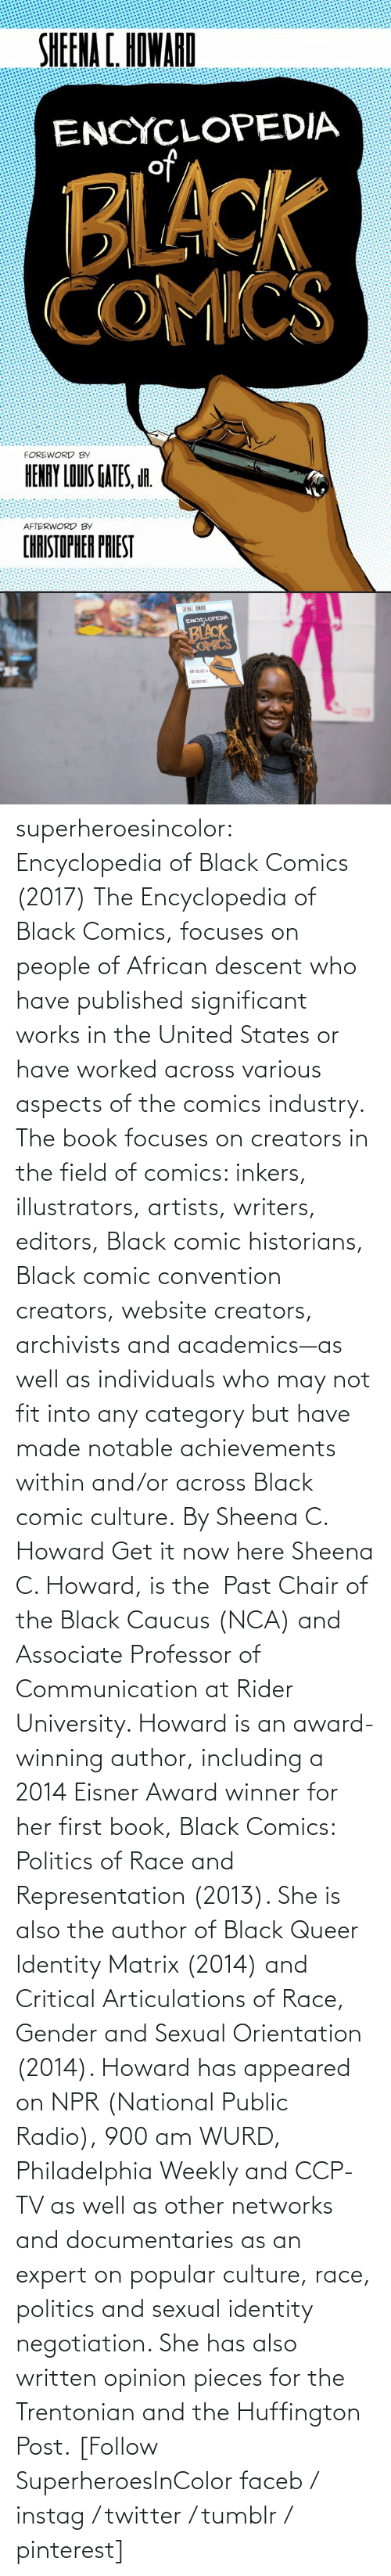 For The: superheroesincolor: Encyclopedia of Black Comics (2017) The Encyclopedia of Black Comics, focuses on people of African descent who have published significant works in the United States or have worked across various aspects of the comics industry.  The book focuses on creators in the field of comics: inkers, illustrators, artists, writers, editors, Black comic historians, Black comic convention creators, website creators, archivists and academics—as well as individuals who may not fit into any category but have made notable achievements within and/or across Black comic culture. By Sheena C. Howard Get it now here  Sheena C. Howard, is the  Past Chair of the Black Caucus (NCA) and Associate Professor of Communication at Rider University. Howard is an award-winning author, including a 2014 Eisner Award winner for her first book, Black Comics: Politics of Race and Representation (2013). She is also the author of Black Queer Identity Matrix (2014) and Critical Articulations of Race, Gender and Sexual Orientation (2014). Howard has appeared on NPR (National Public Radio), 900 am WURD, Philadelphia Weekly and CCP-TV as well as other networks and documentaries as an expert on popular culture, race, politics and sexual identity negotiation. She has also written opinion pieces for the Trentonian and the Huffington Post.   [Follow SuperheroesInColor faceb / instag / twitter / tumblr / pinterest]